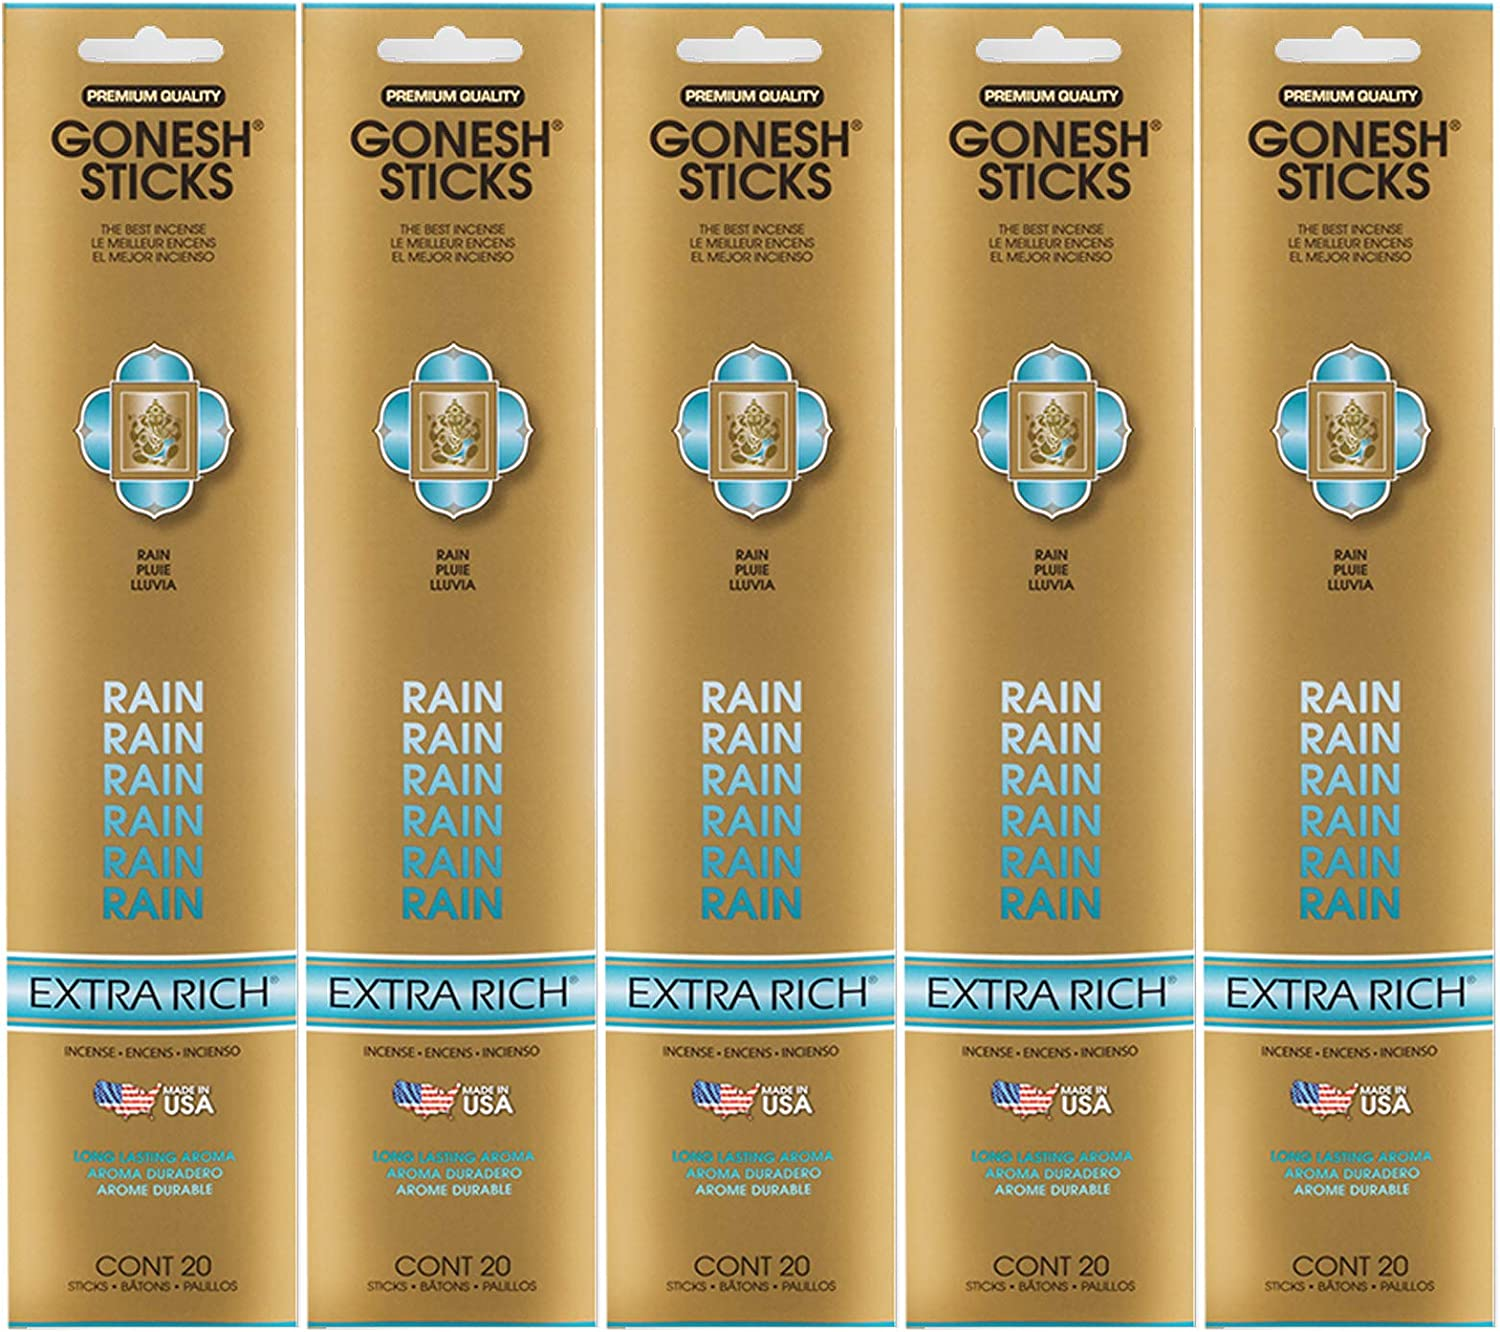 Gonesh Incense Sticks Extra Rich Collection - Rain 5 Packs (100 Total)